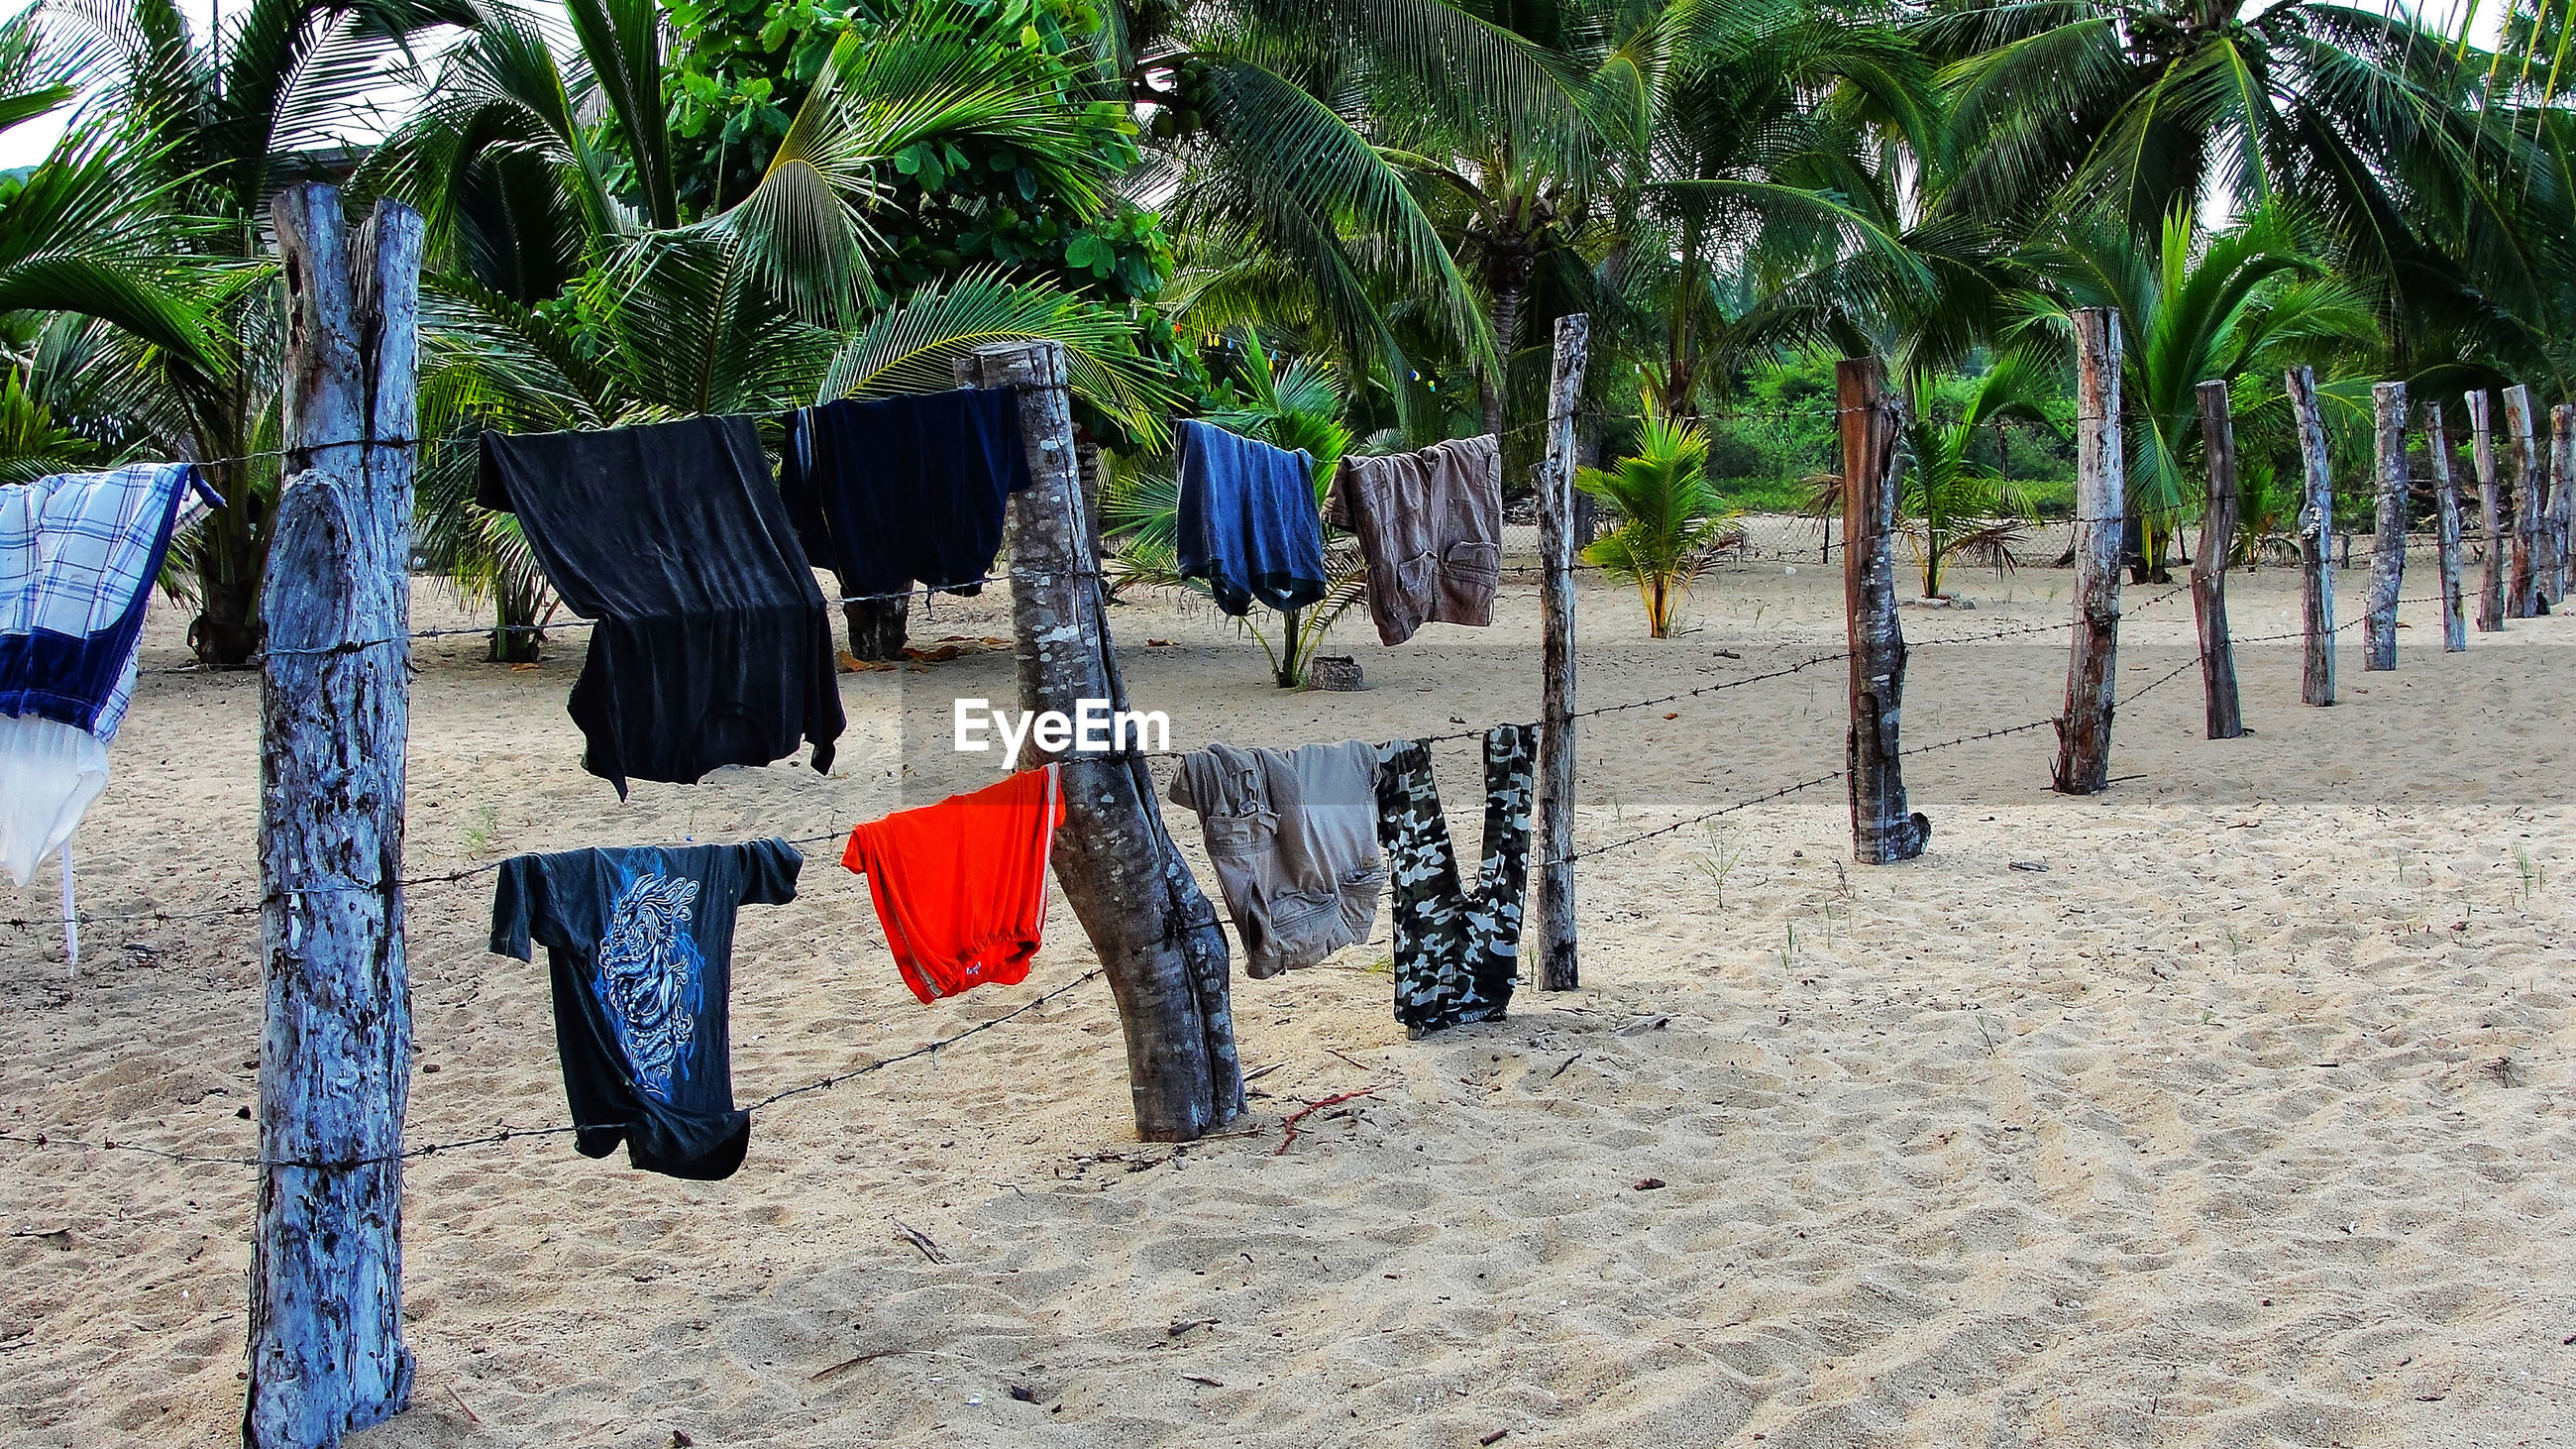 CLOTHES DRYING ON WOODEN POST